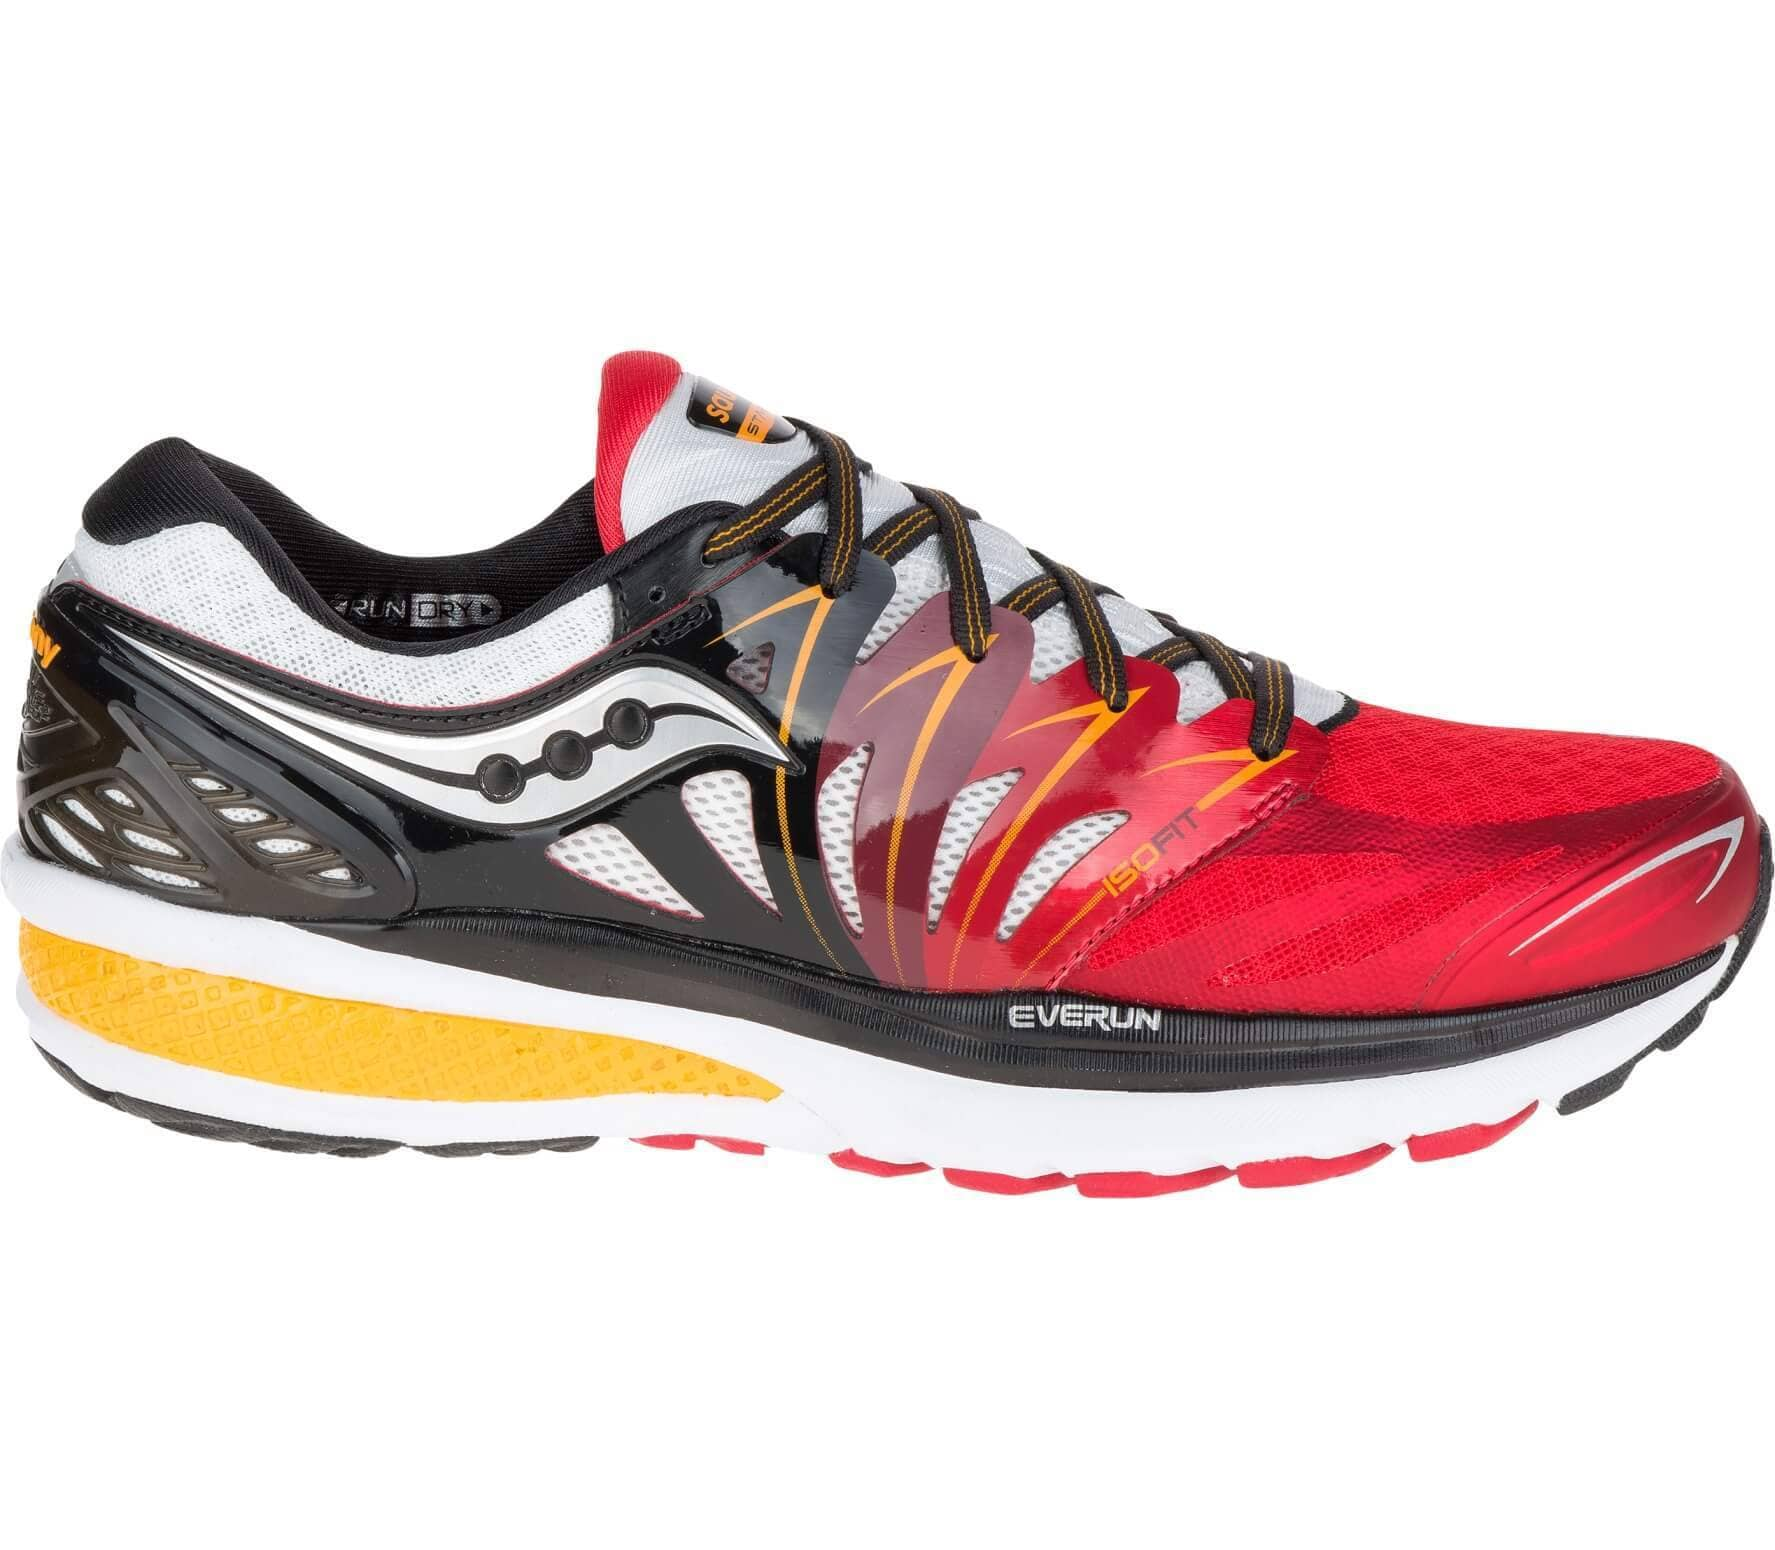 f795a70d Saucony Hurricane Iso 2 men's running shoes Men